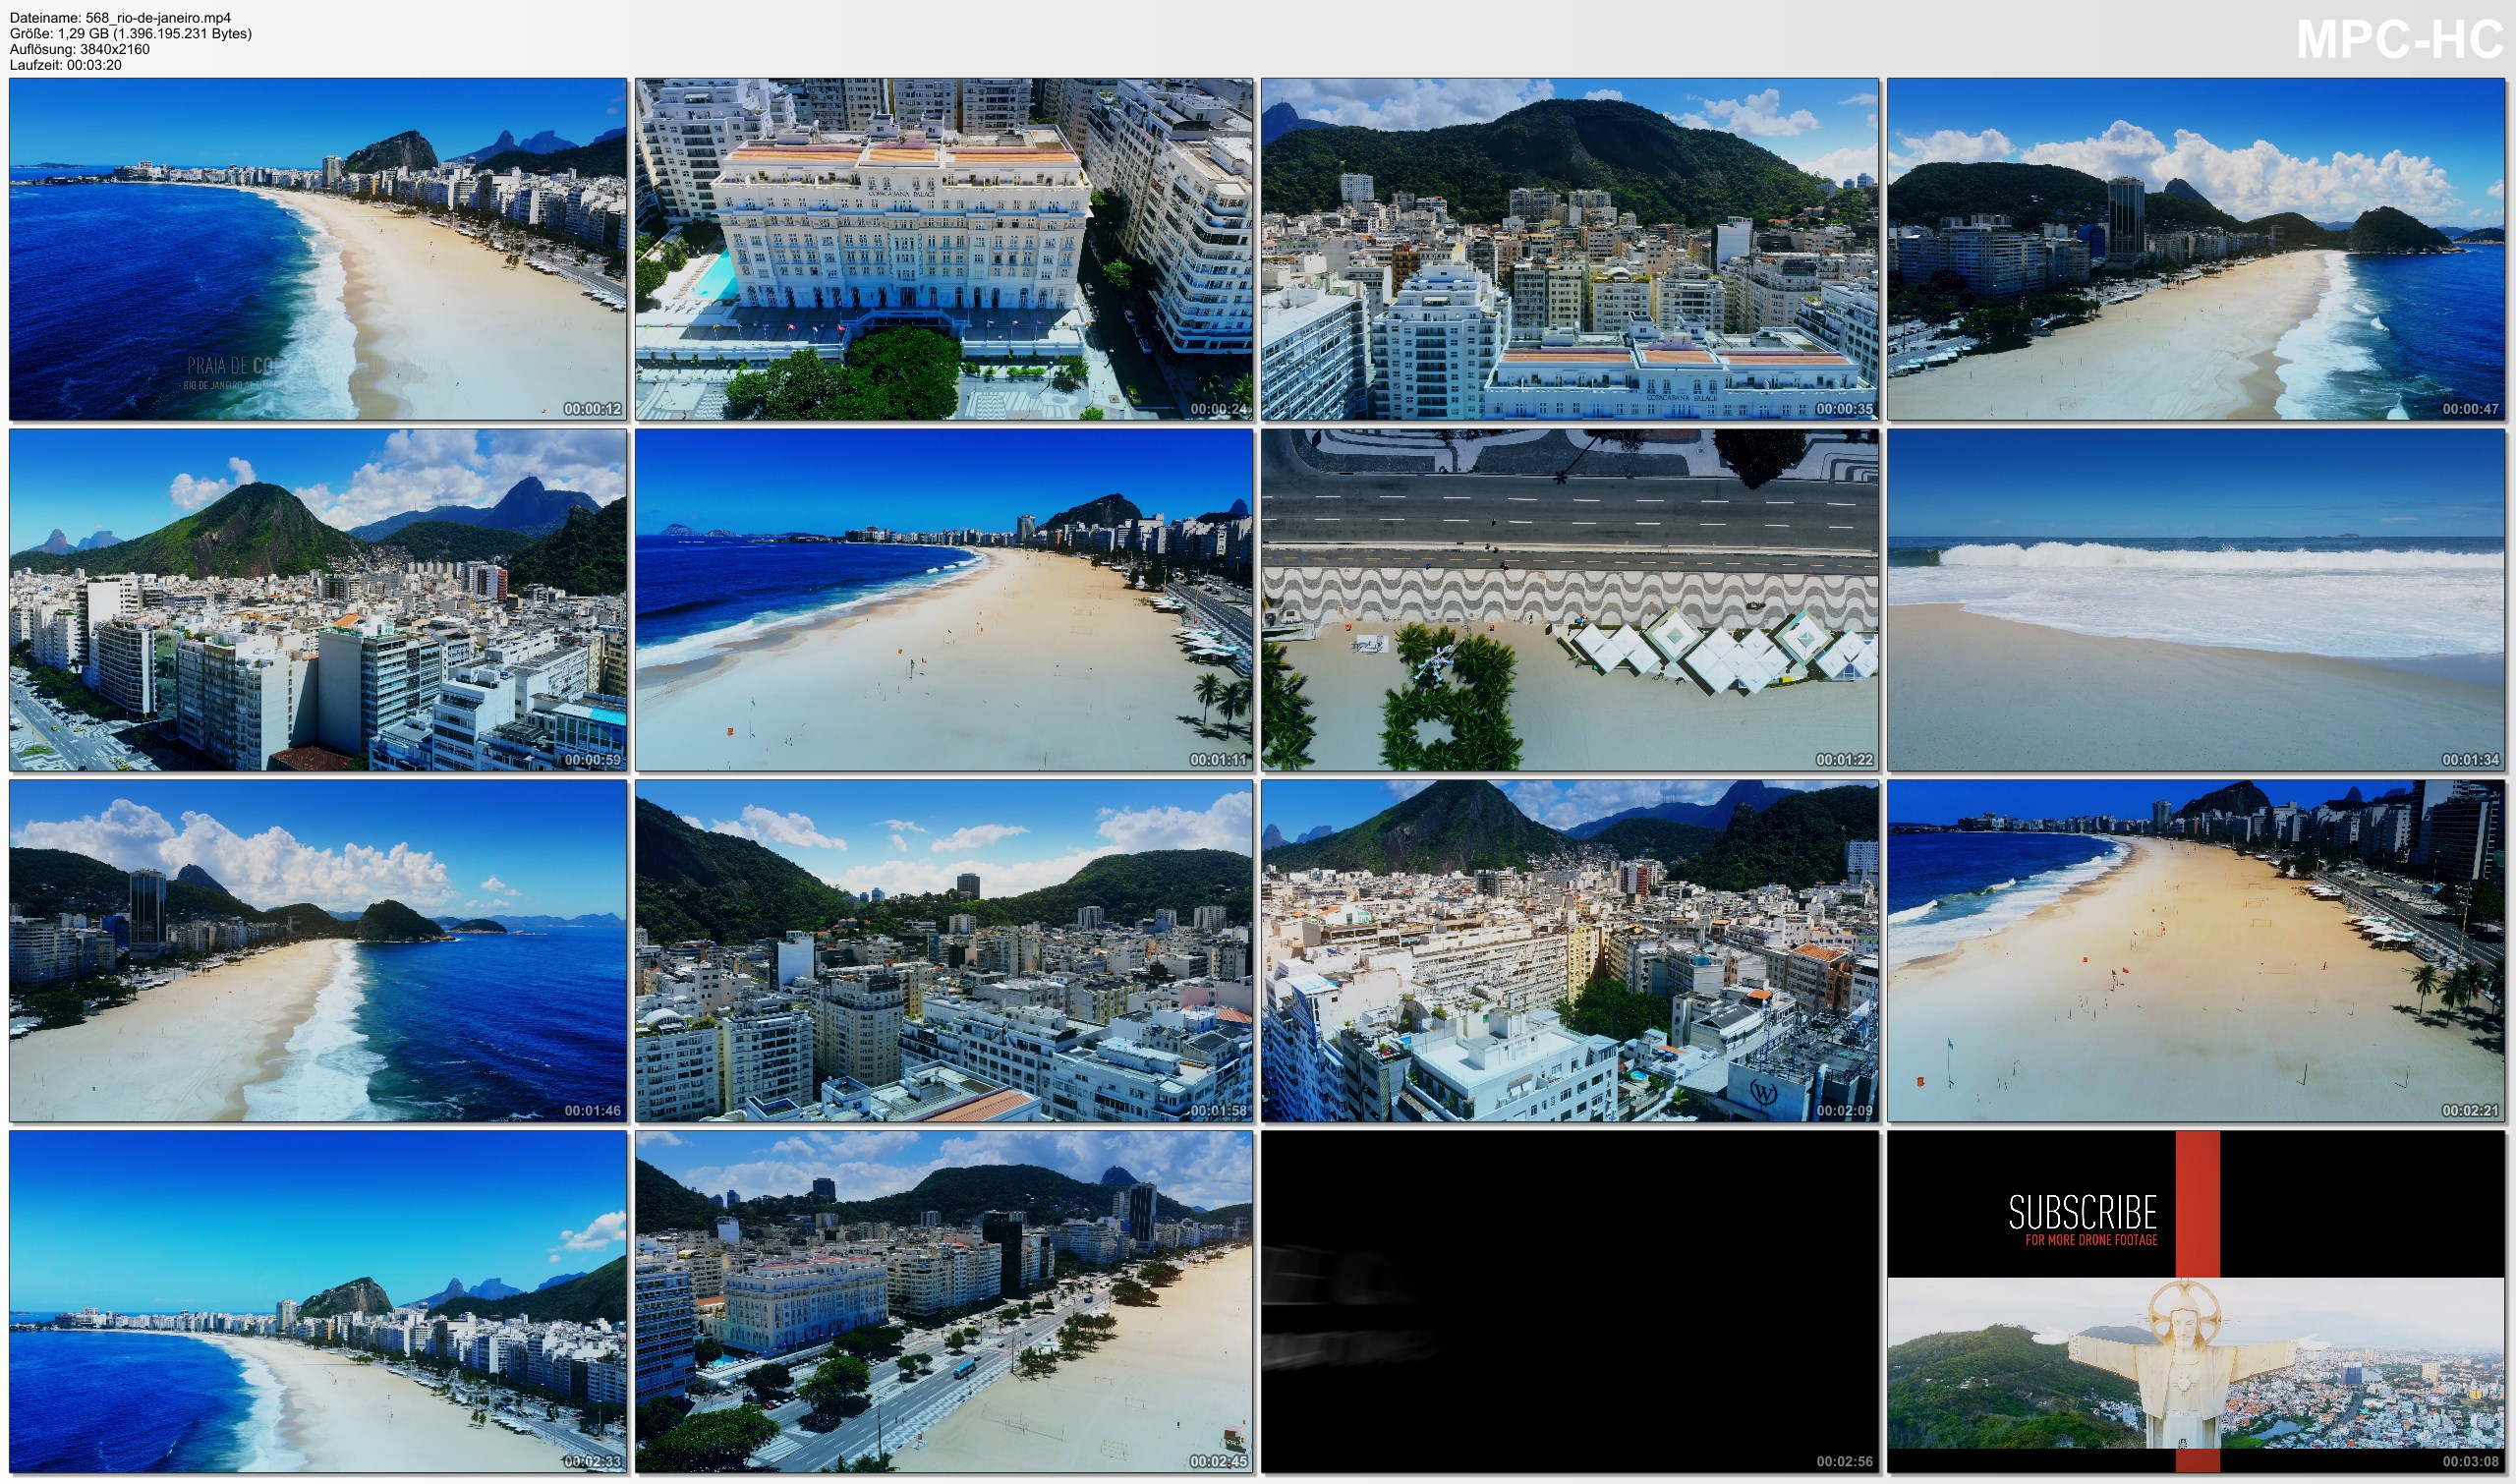 Drone Pictures from Video 【4K】Copacabana from Above | Times of Corona Virus BRAZIL 2020 | Rio de Janeiro Beach |March 23 Drone